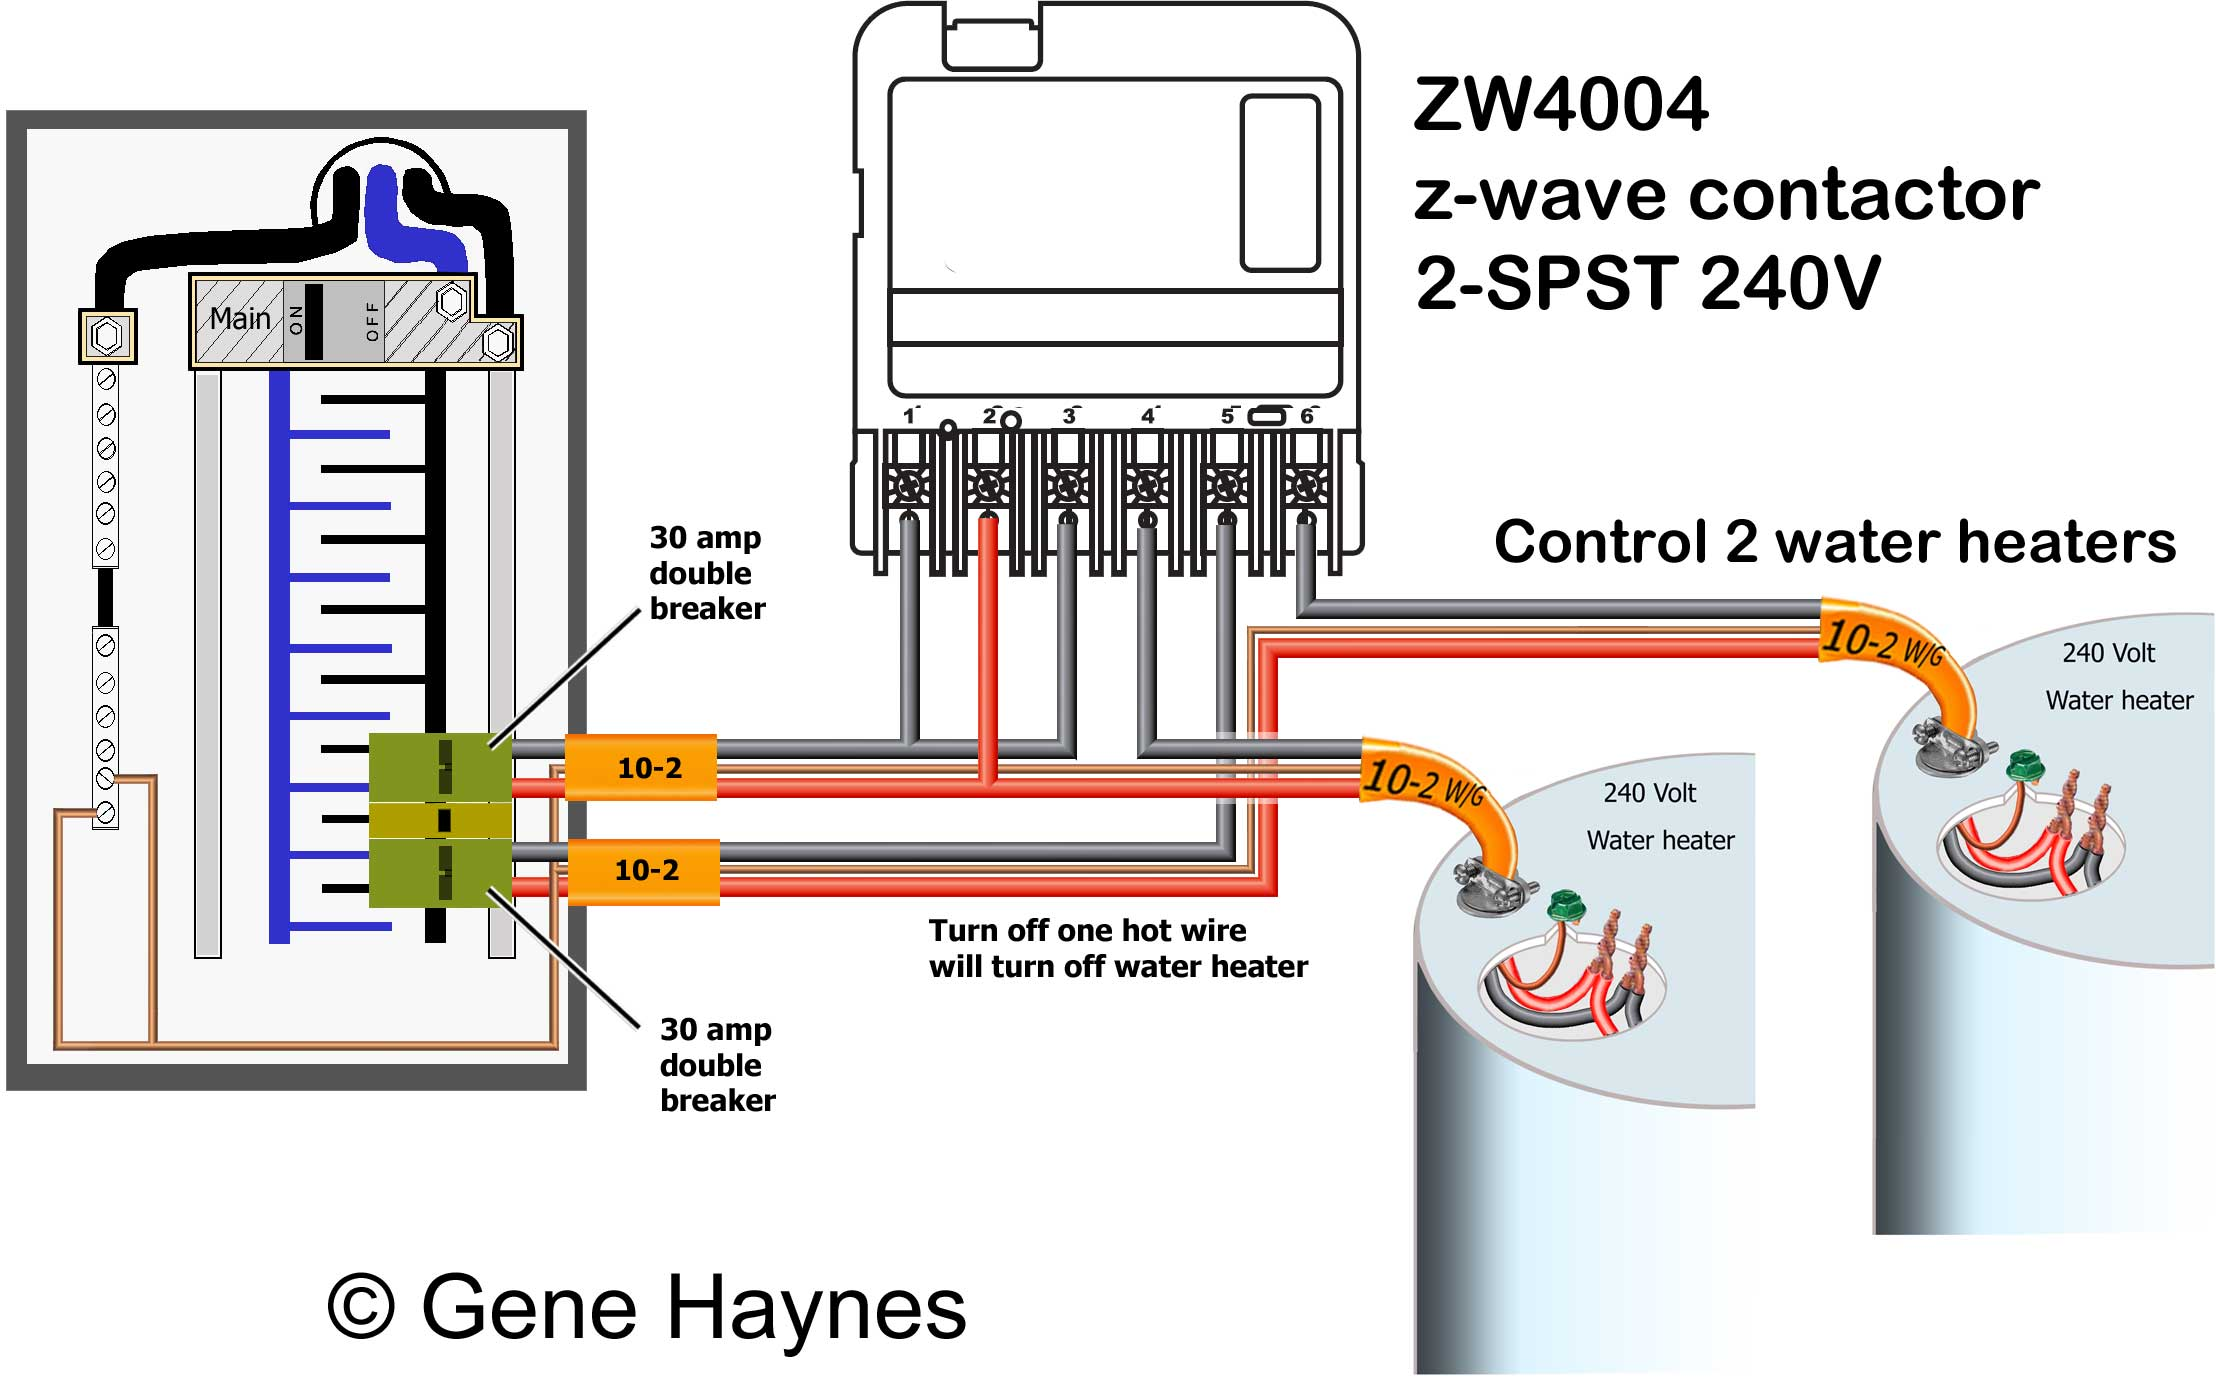 zw40004 wiring 240 2 SPST how to wire ca3750 z wave contactor zwave basics Trailer Wiring Diagram at reclaimingppi.co